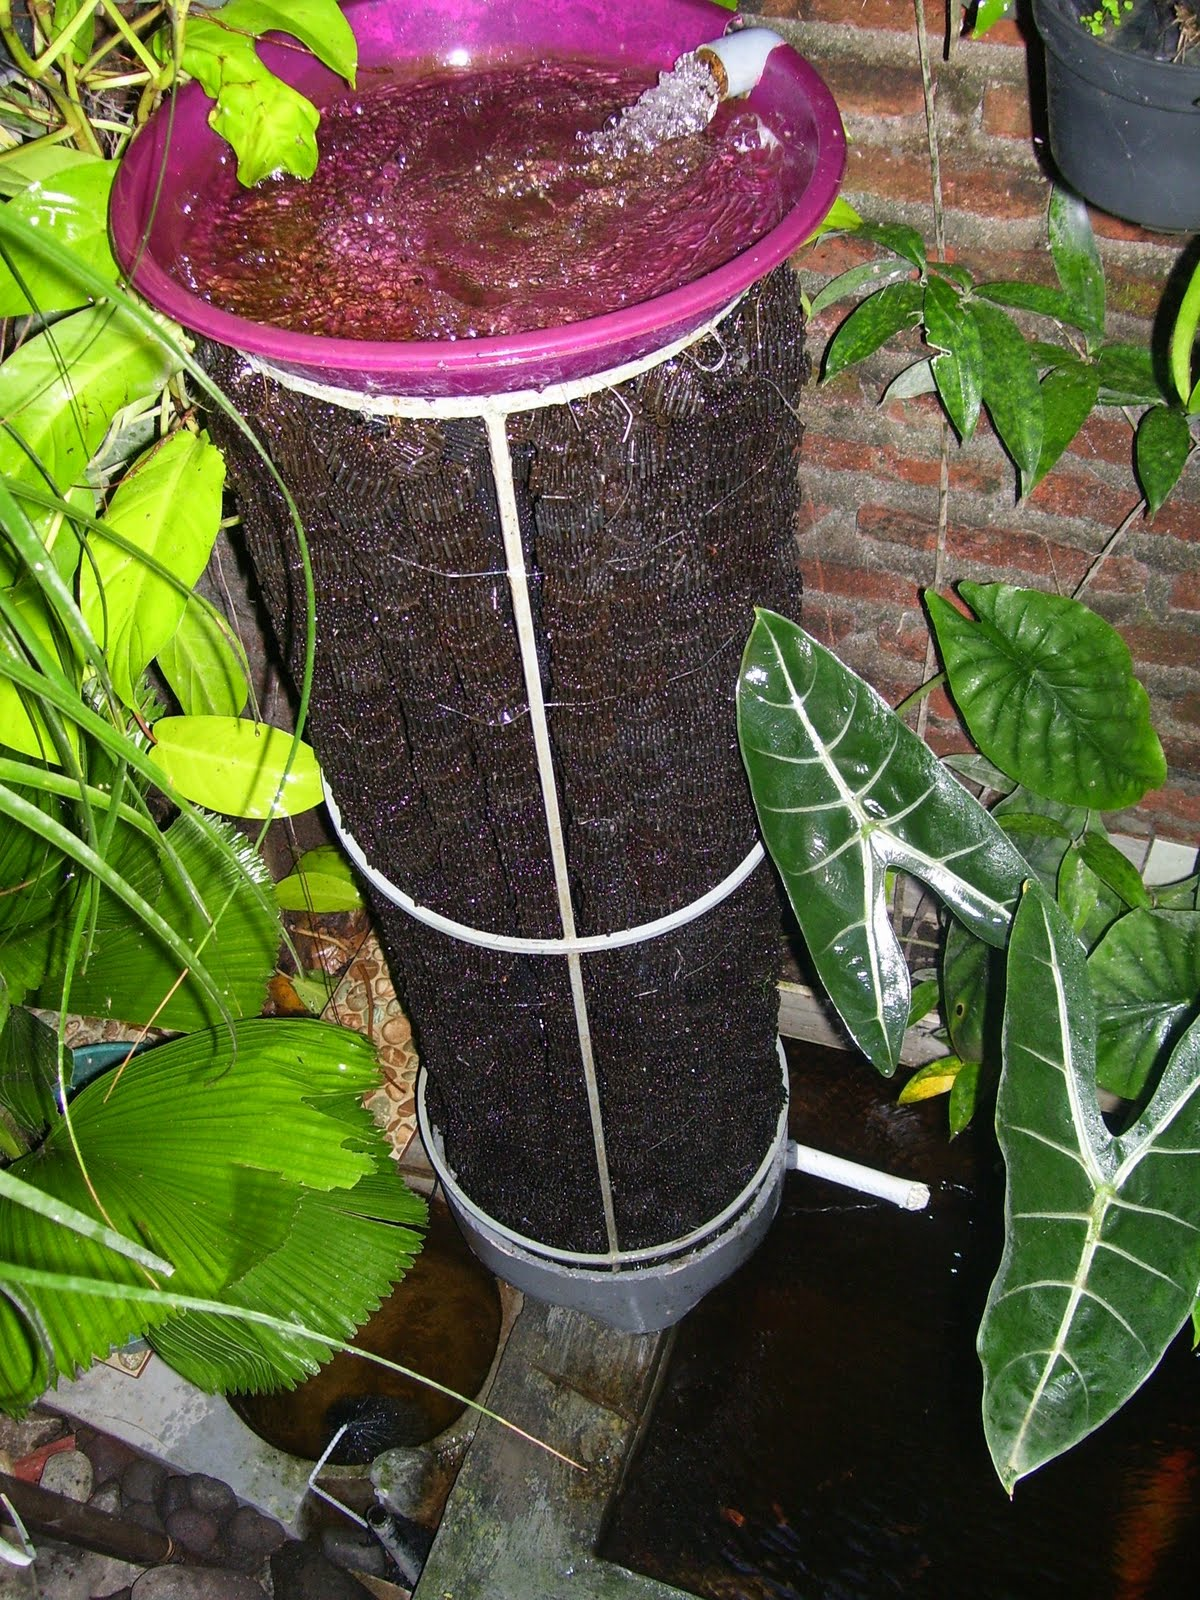 Lukman arif wijaya trickle tower the perfect biological for Biological pond filter